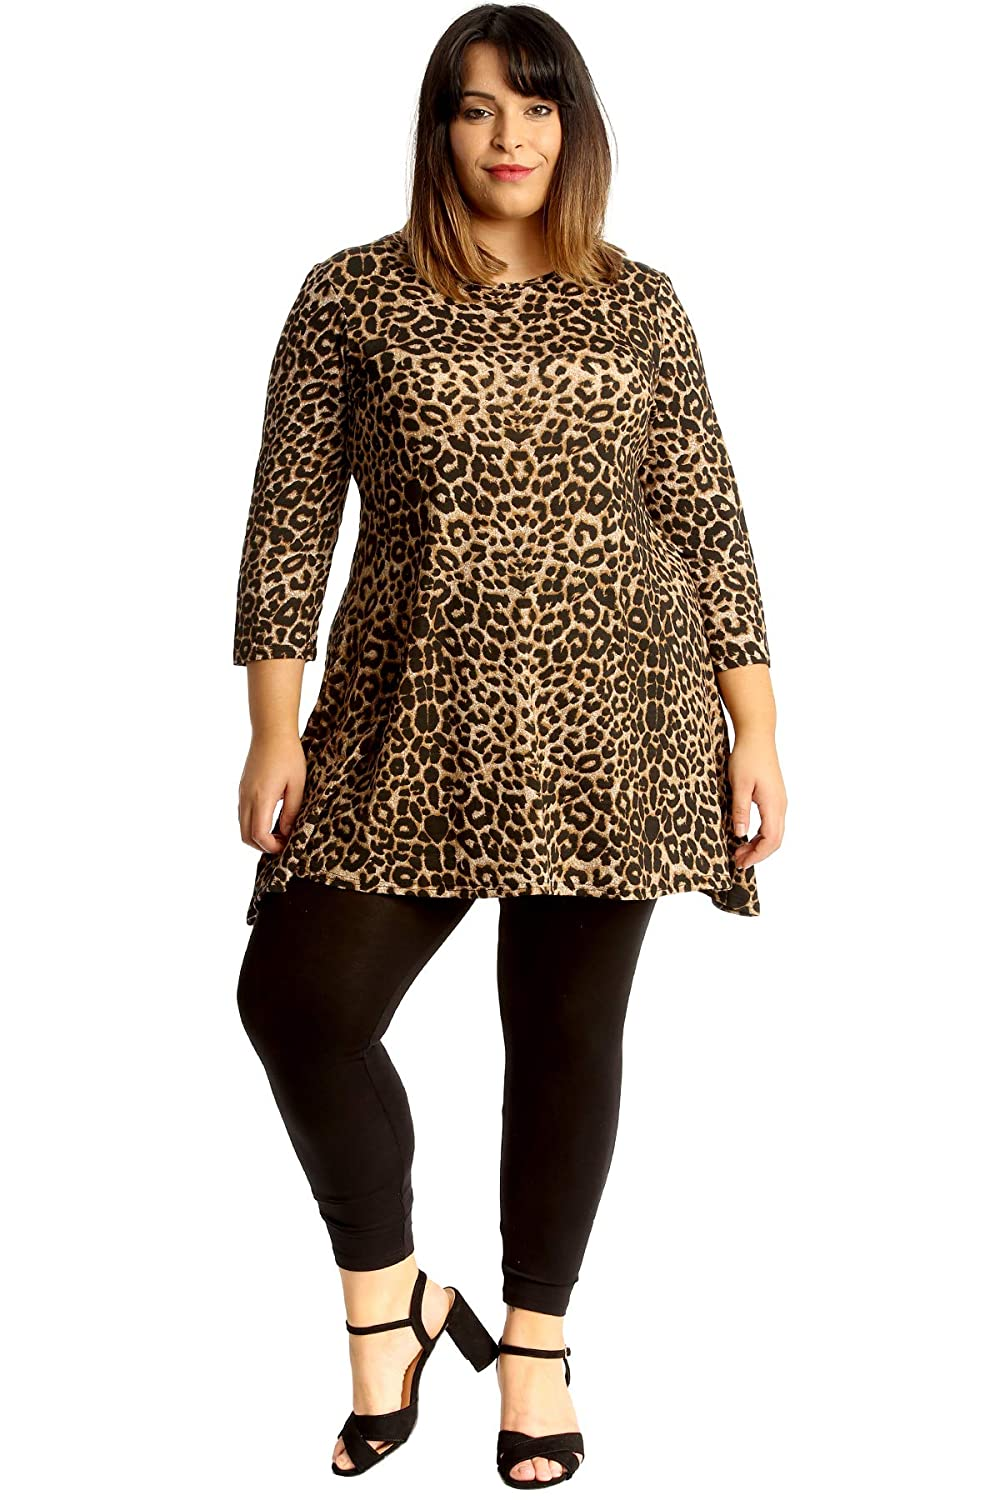 3a4f806e33cc2 Womens Plus Size Top Leopard Animal Print Tunic Swing Skater Style at  Amazon Women s Clothing store